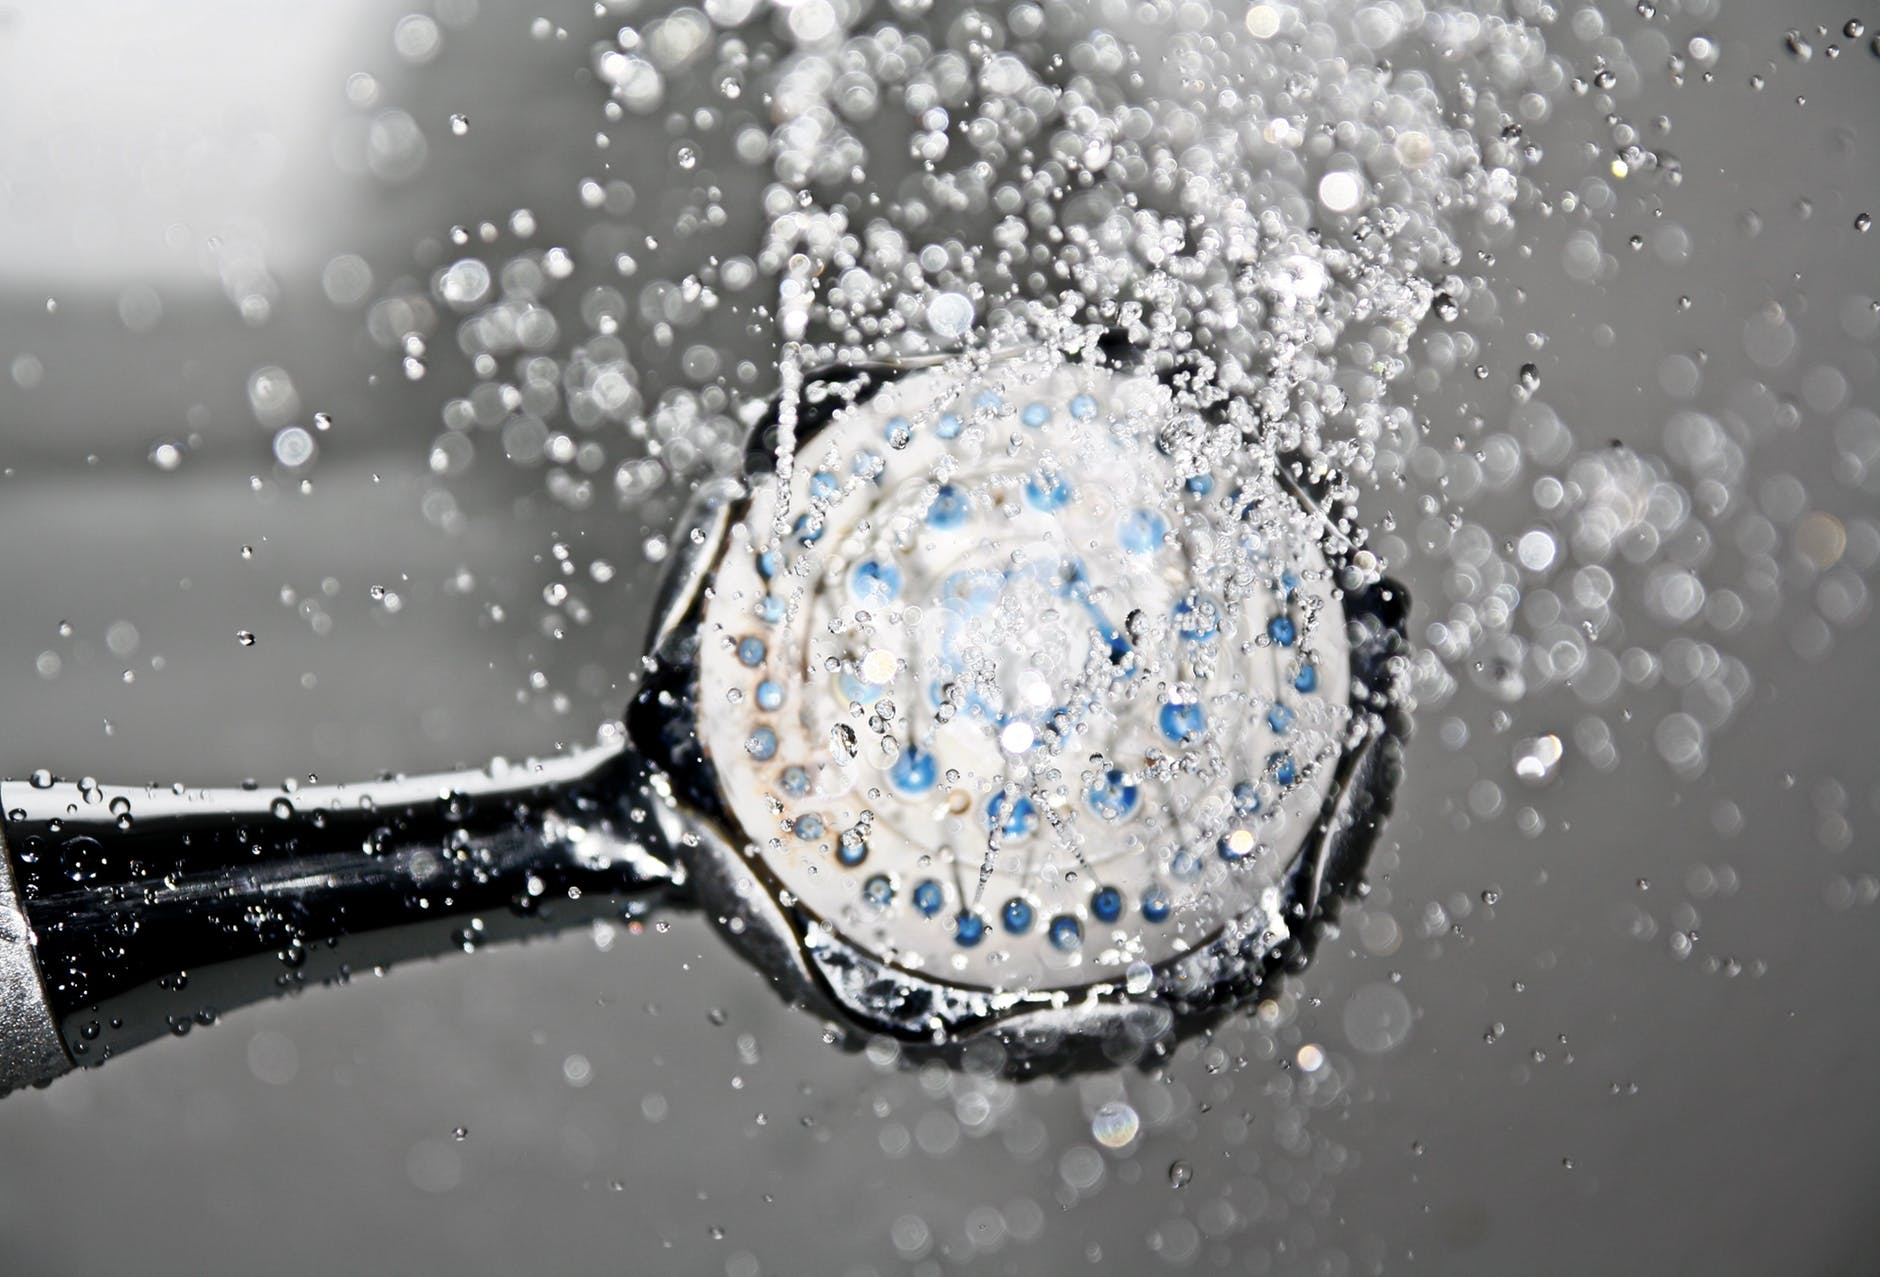 shower-shower-head-water-drop-of-water-161502 (1).jpeg